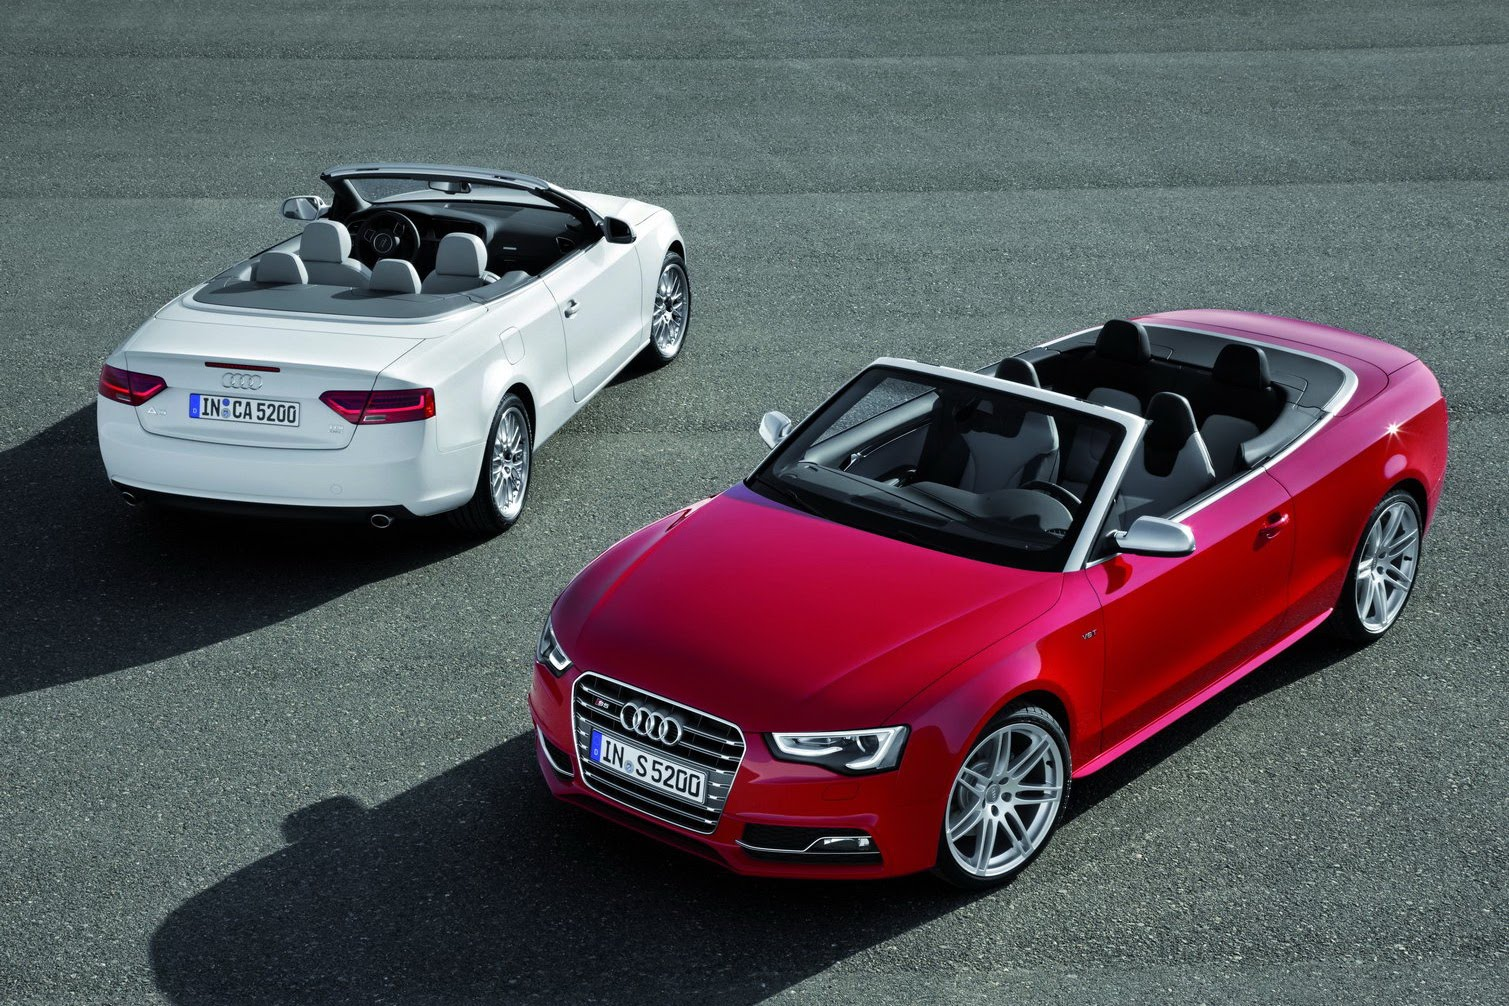 Audi A Model Range And S Facelift Revealed BenAutobahn - All audi a models